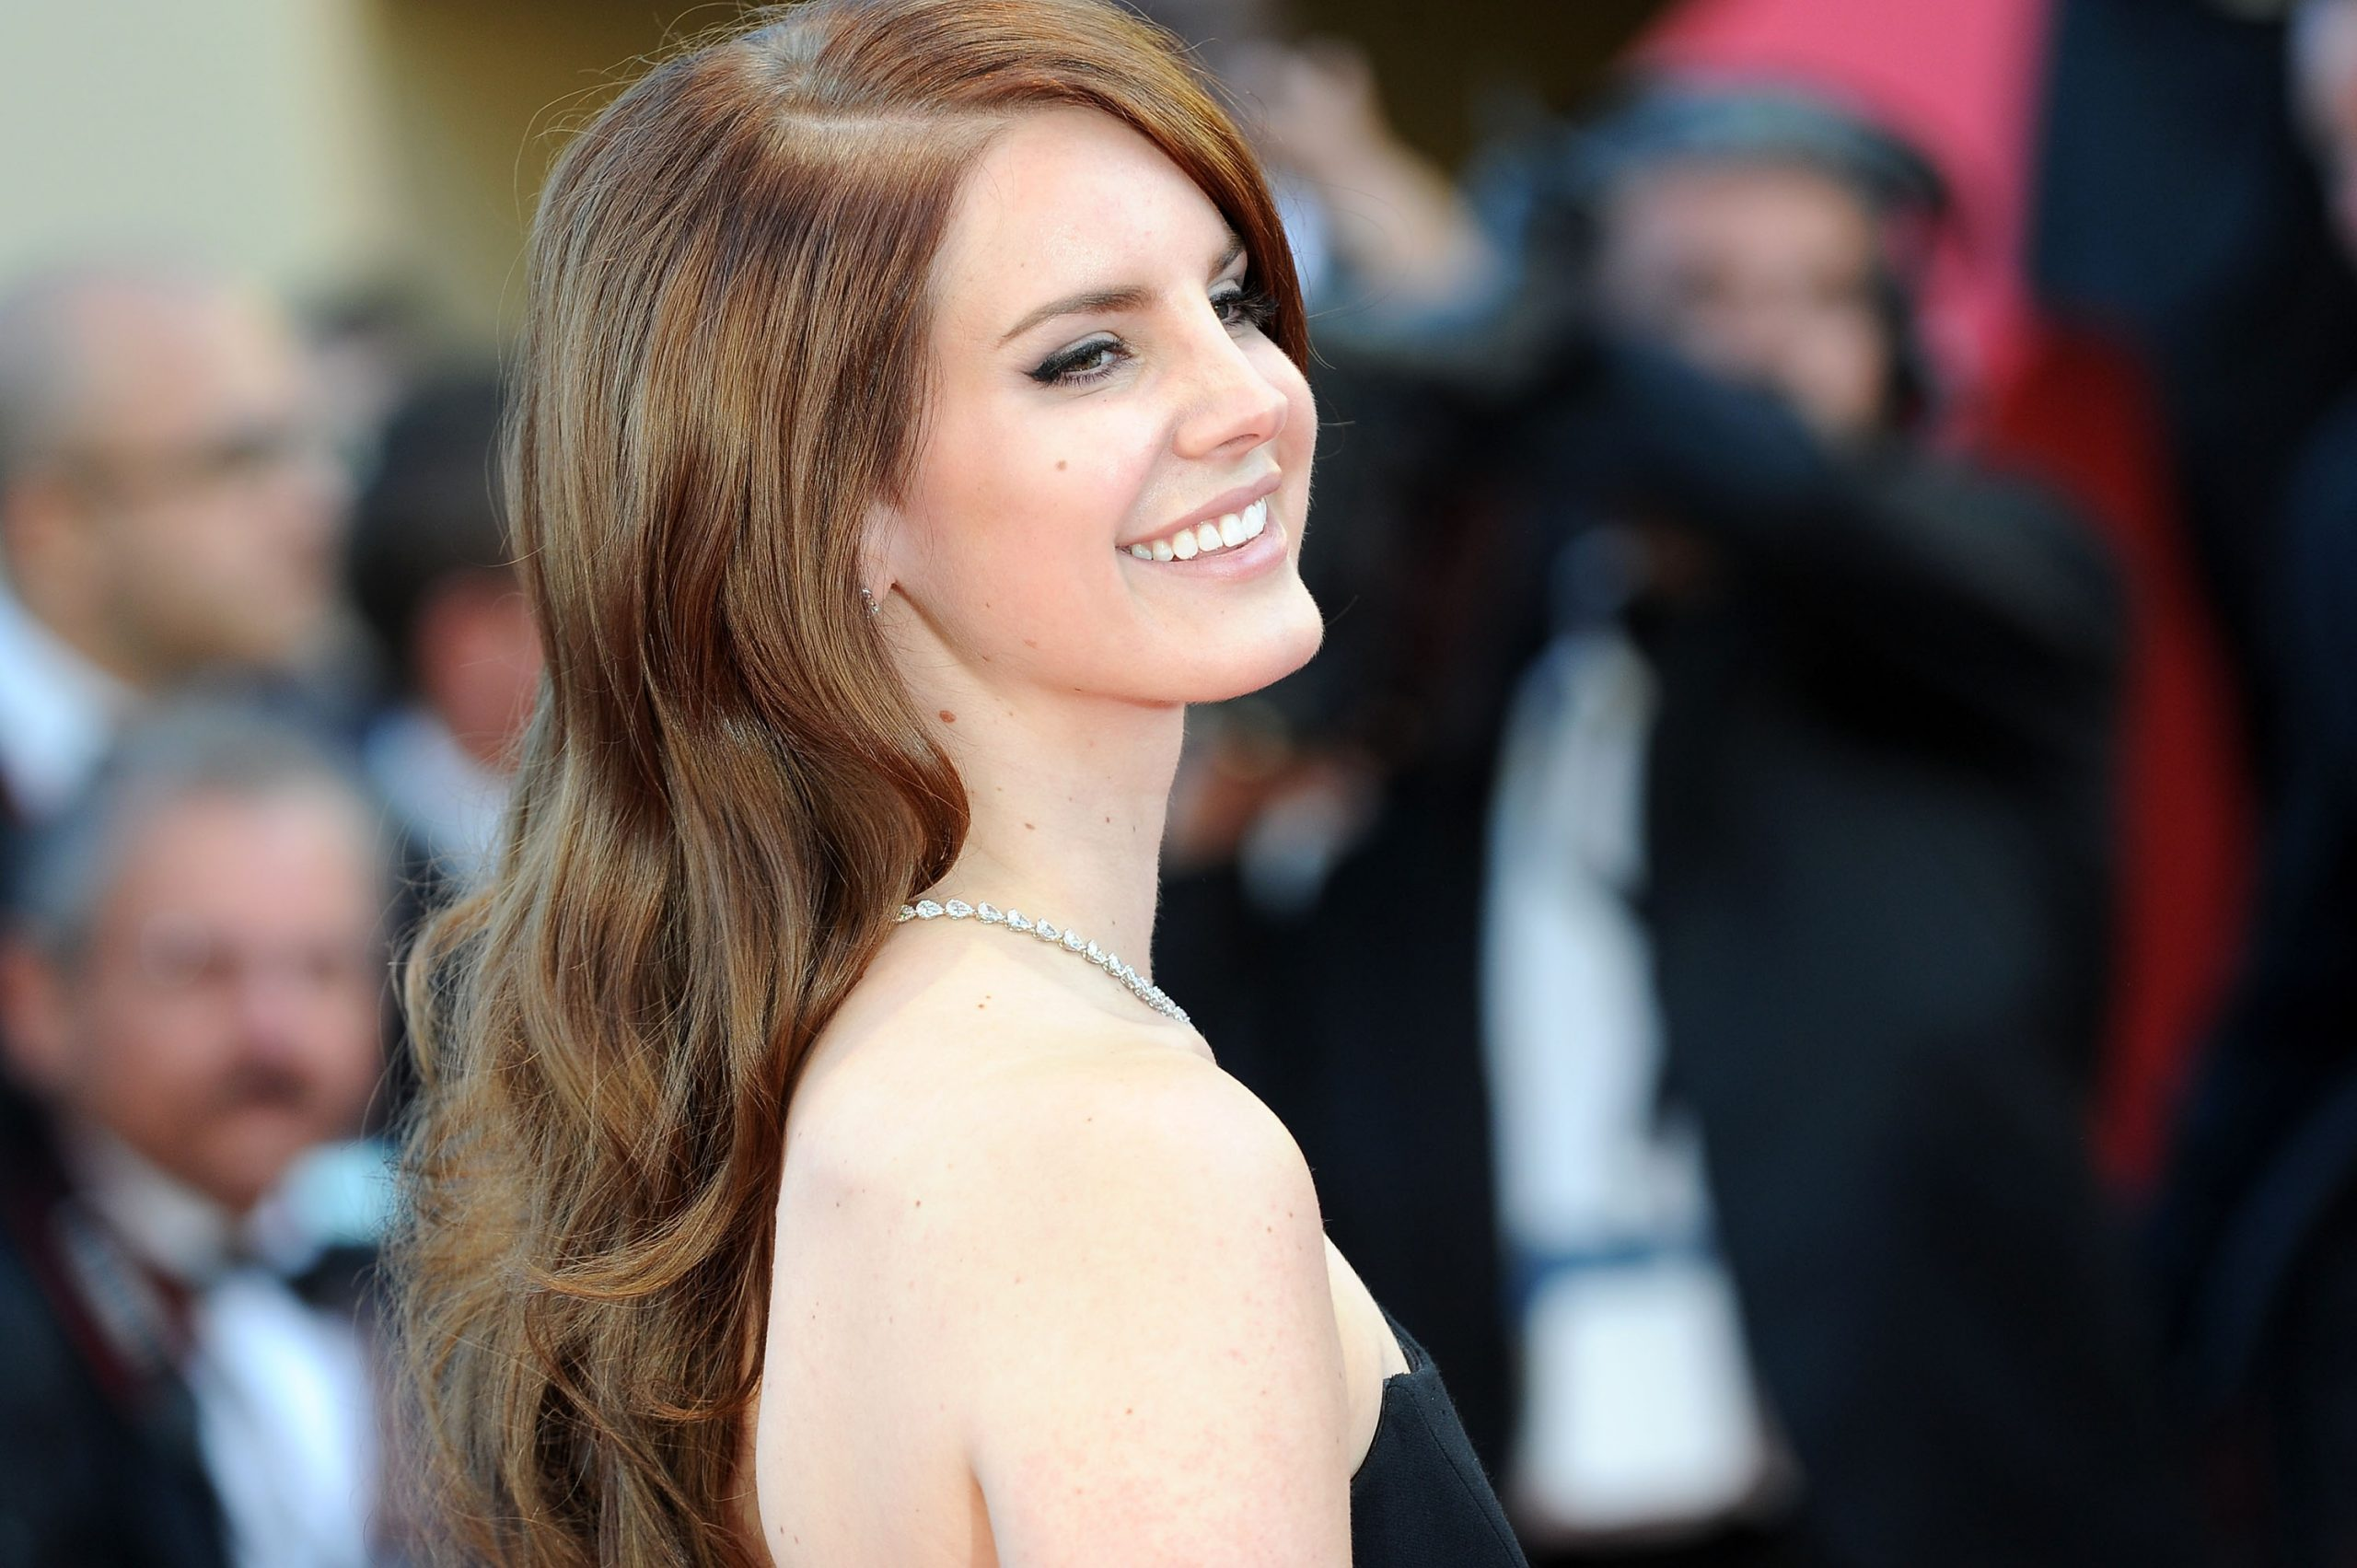 9 Facts Until You Get To Your Own Lana Del Rey Property